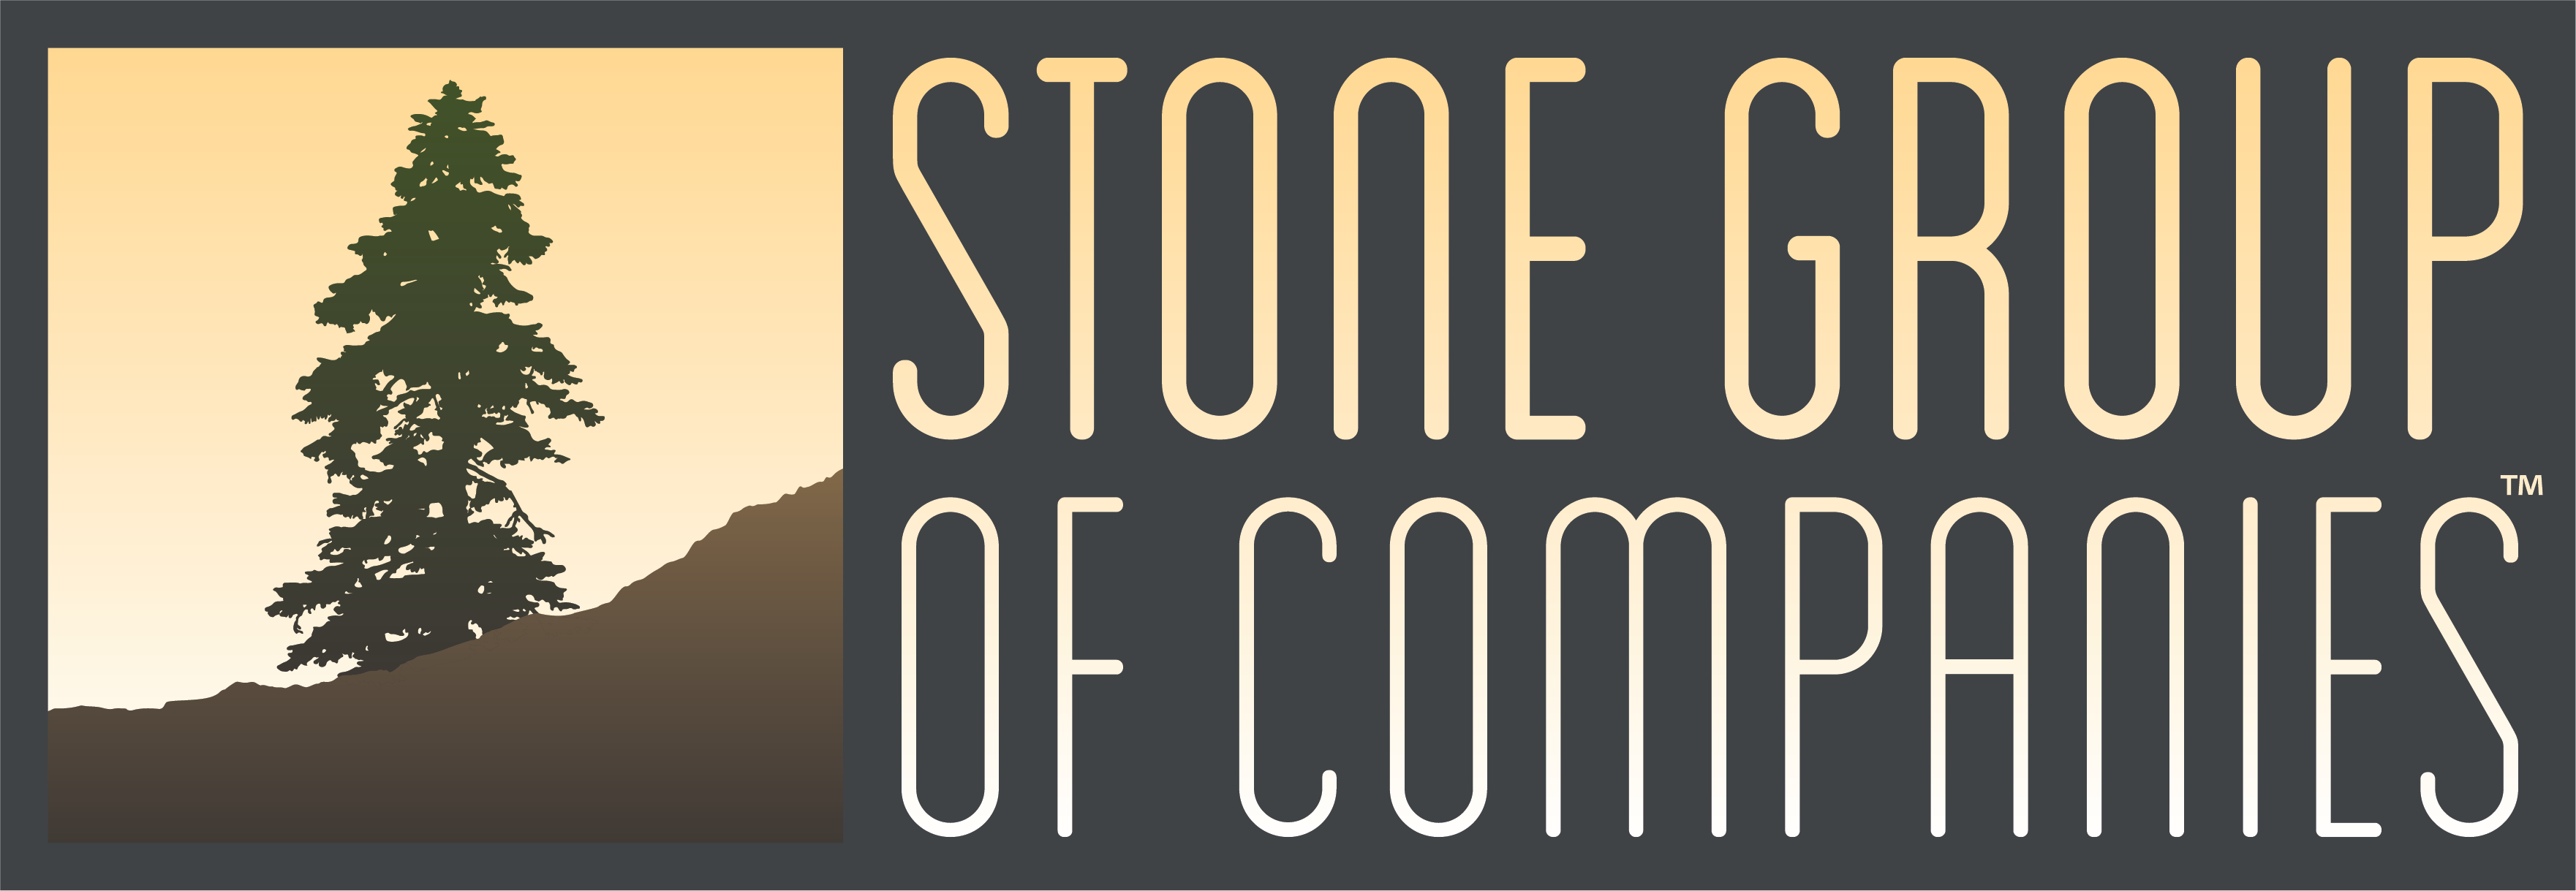 Stone Group of Companies